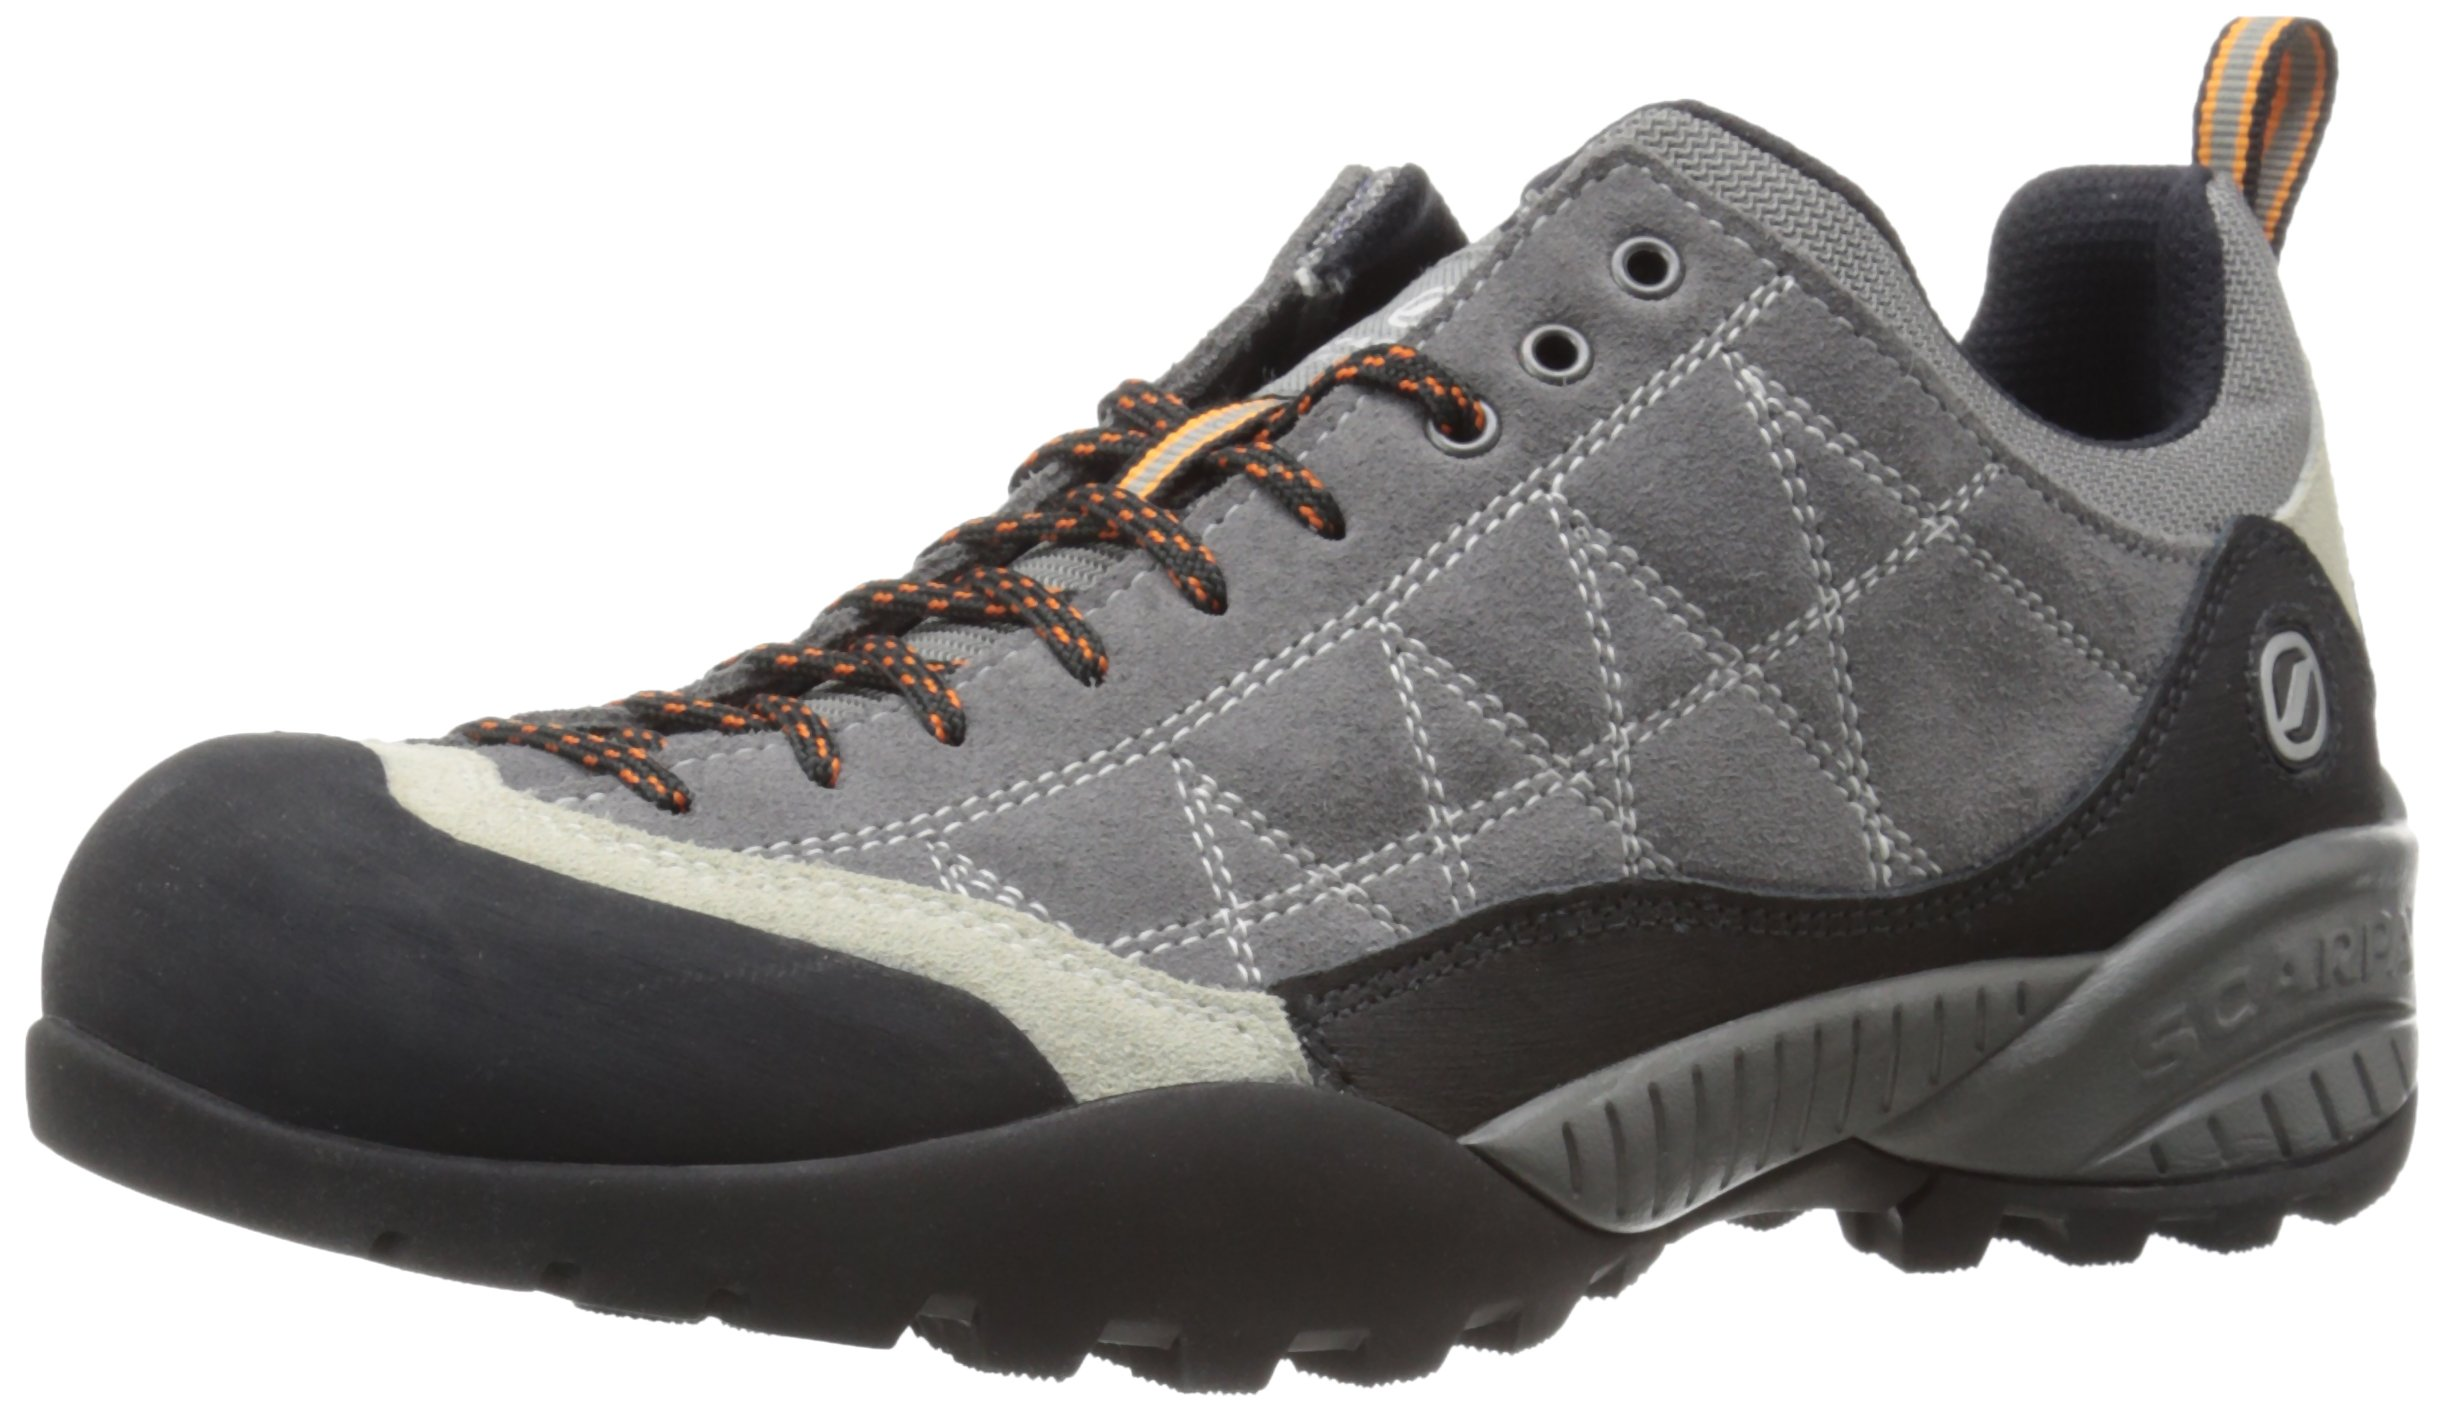 Scarpa Men's ZEN Hiking Shoe, Smoke/Fog, 40 EU/7.5 M US